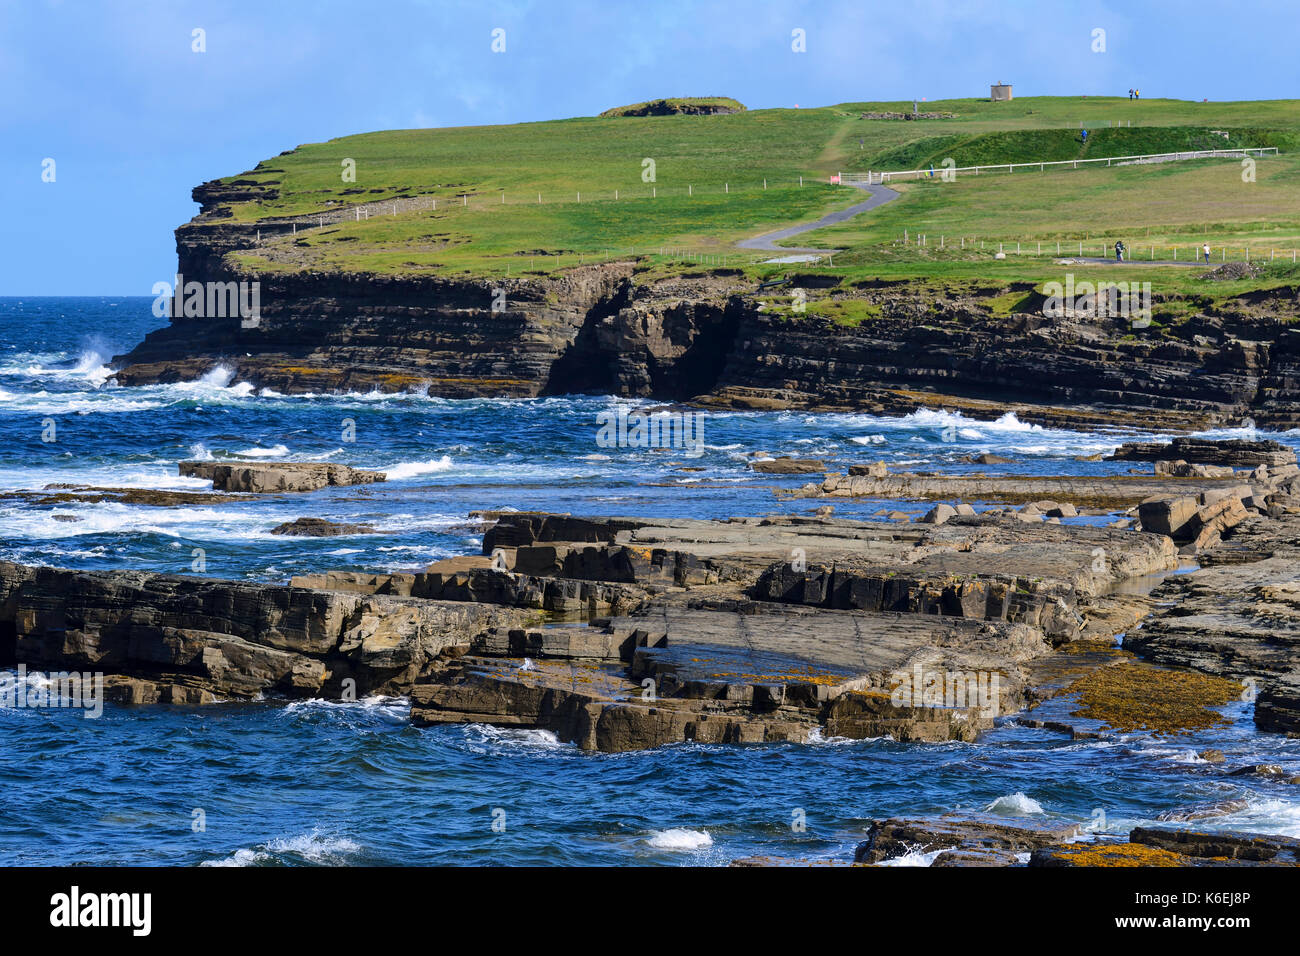 Waves breaking on foreshore on approach to Downpatrick Head, County Mayo, Republic of Ireland - Stock Image